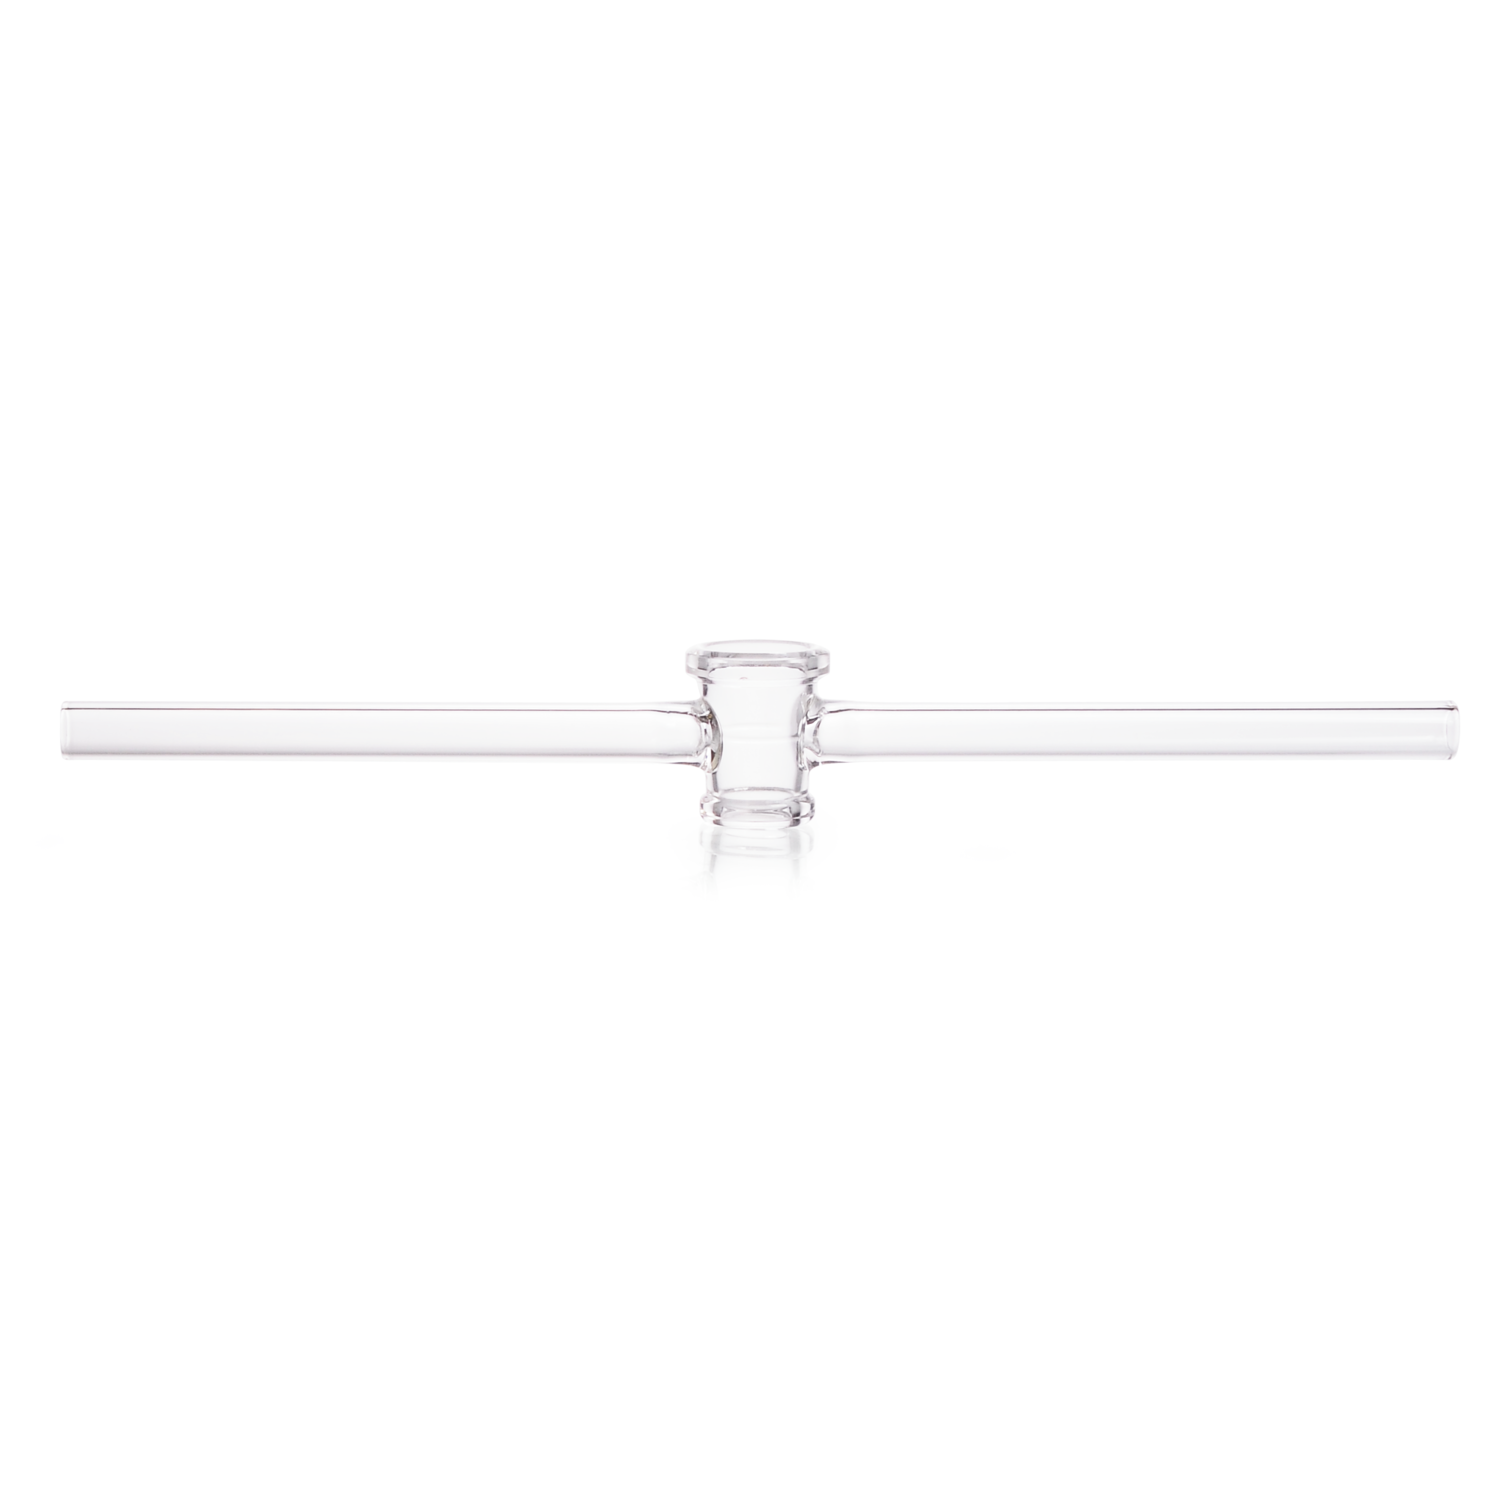 DURAN® Single-way Stopcock, taper 1:5, ground and polished, without key, taper 1:5, bore 6 mm, NS 19.5